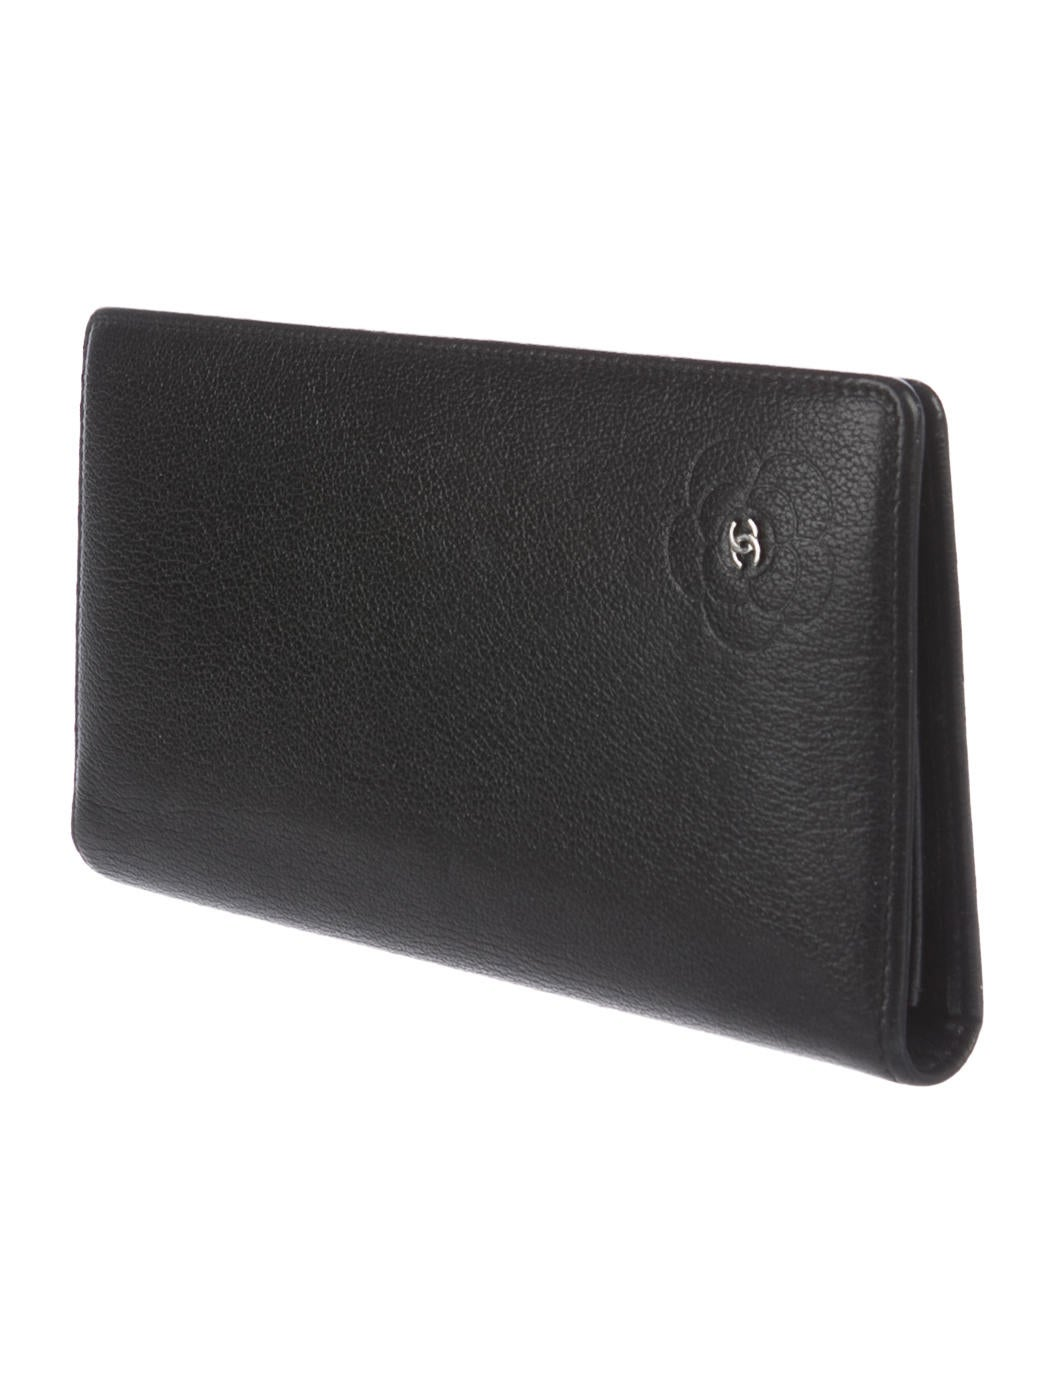 Chanel Leather Camellia Wallet - Accessories - CHA193057 ...